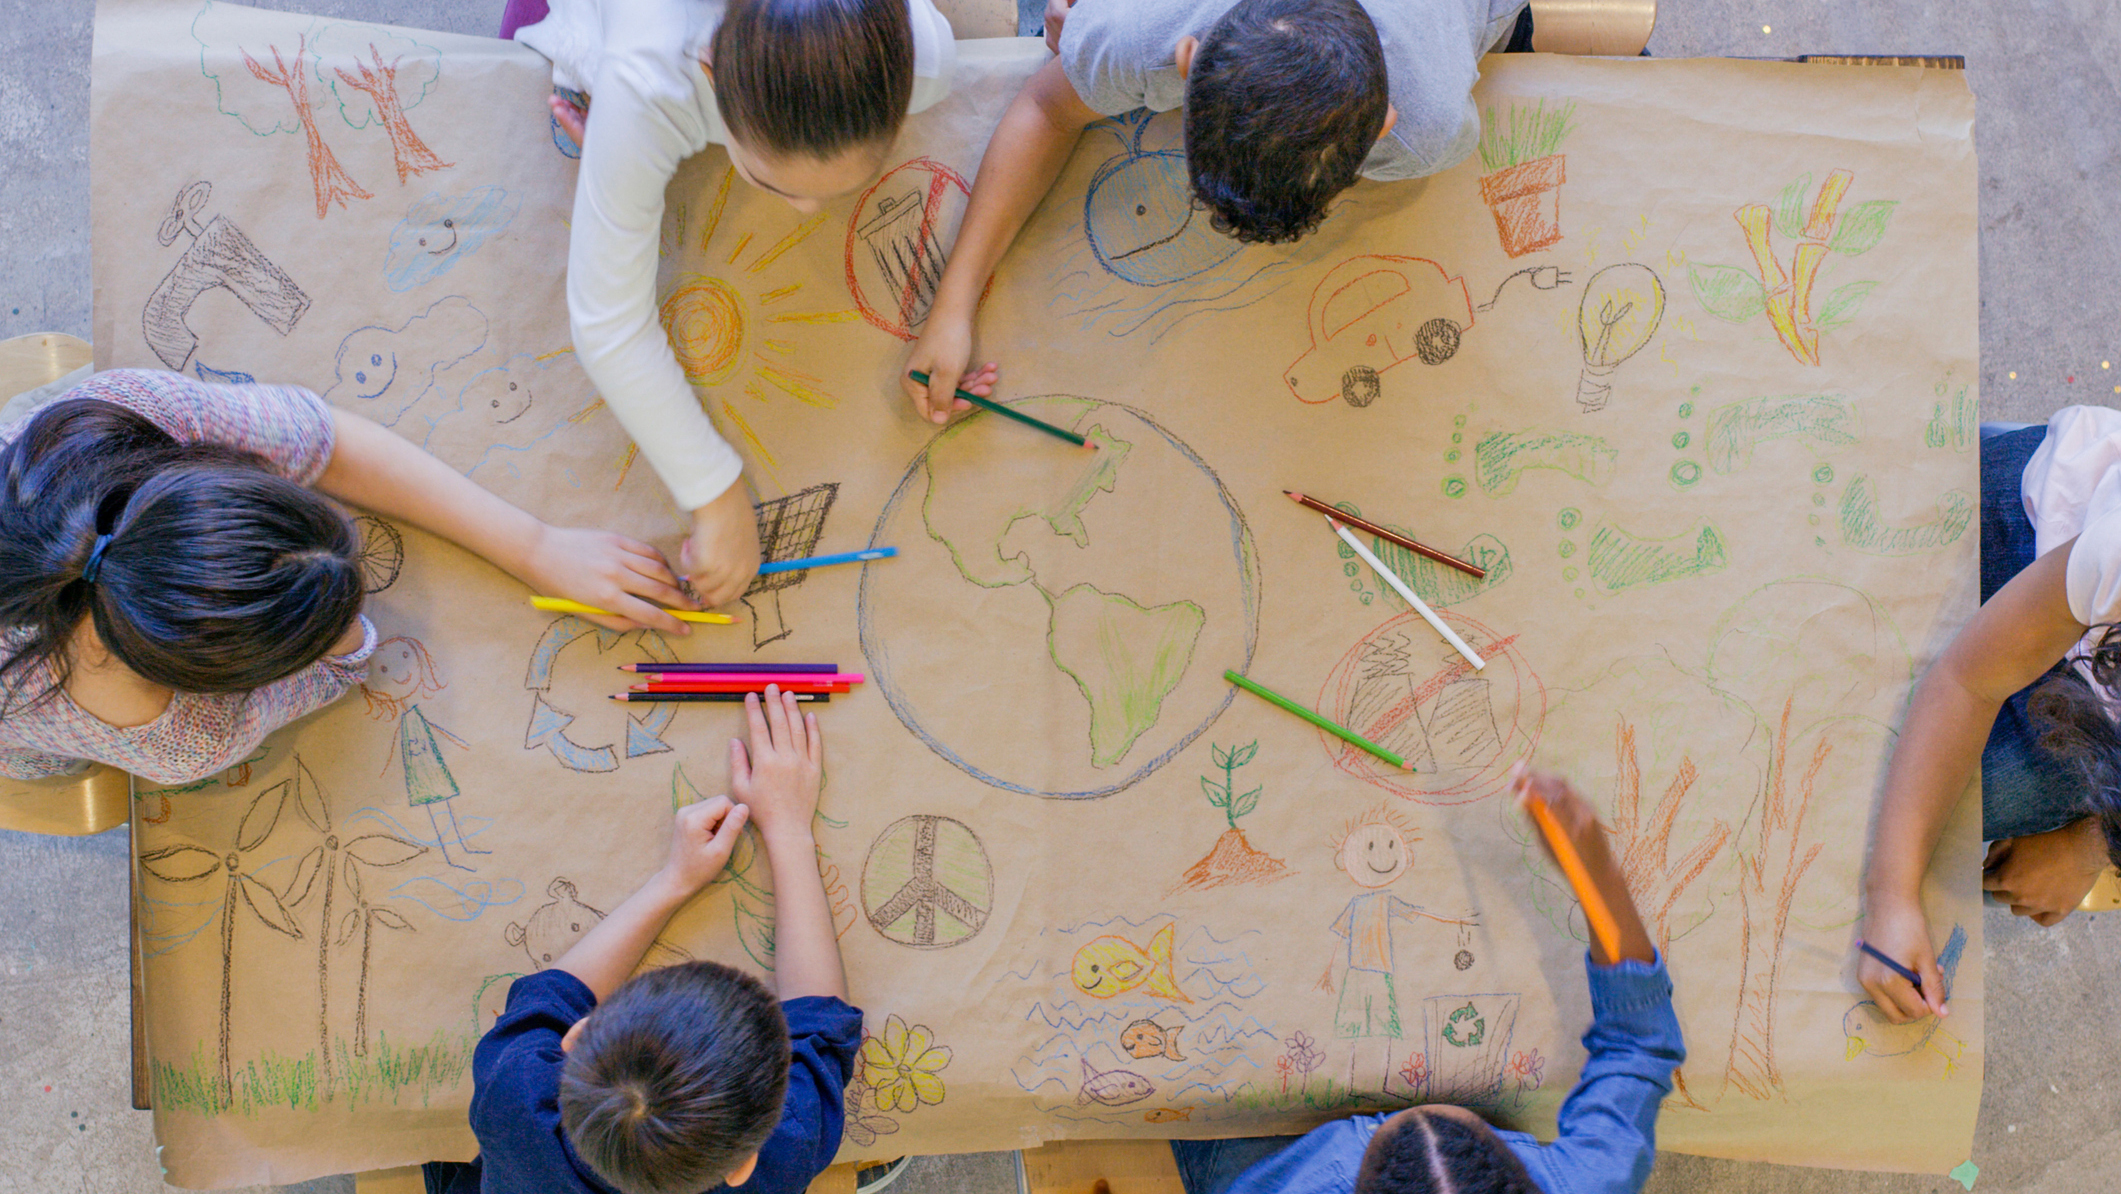 Children drawing pictures showing sustainability